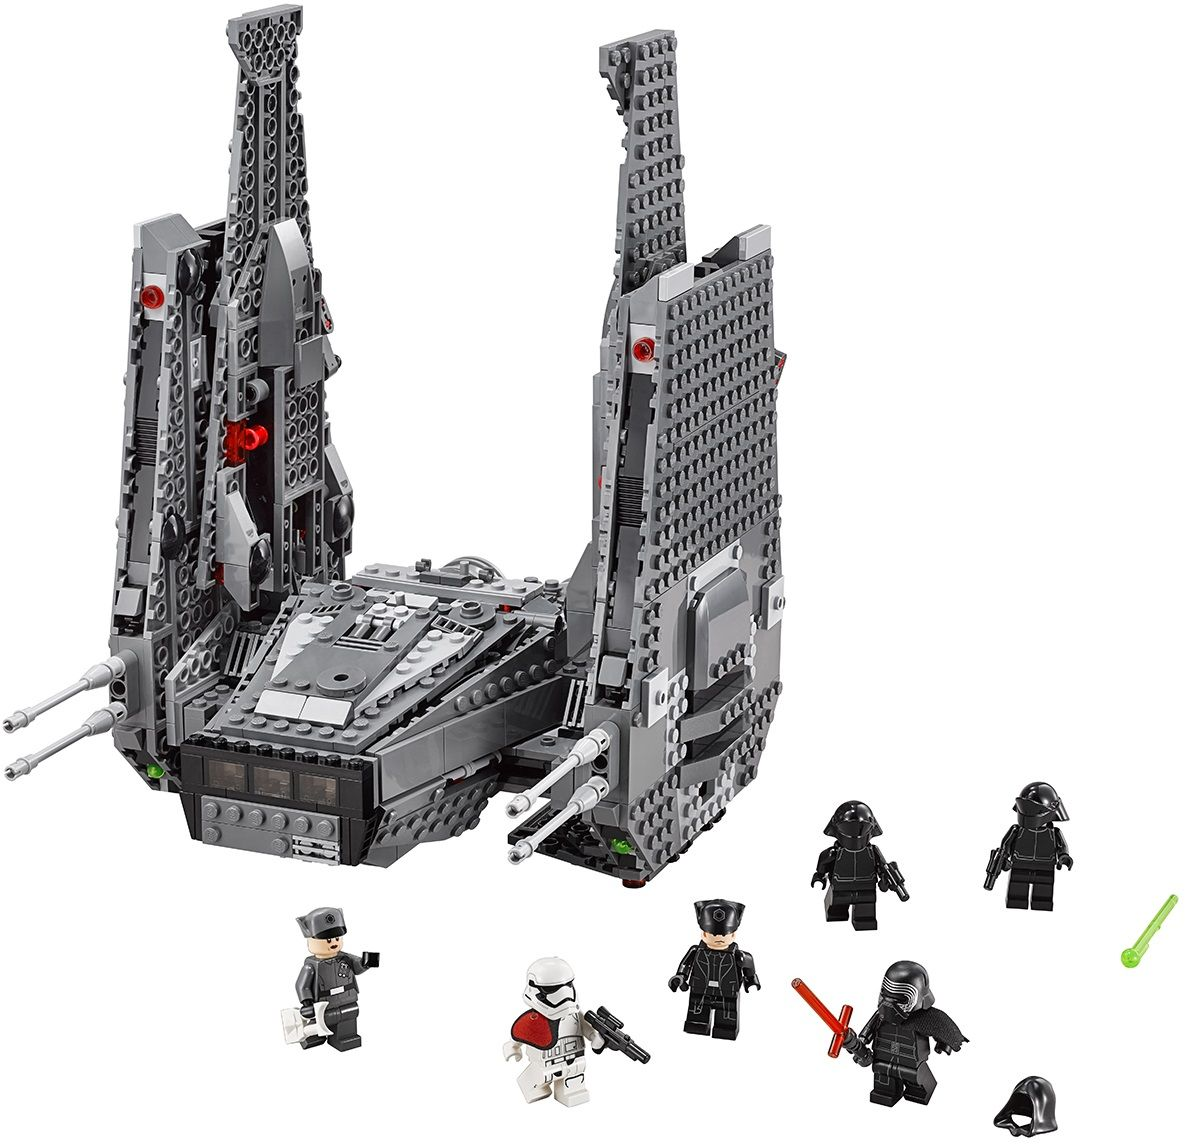 Star Wars Lego Toys : First official images of star wars the force awakens lego